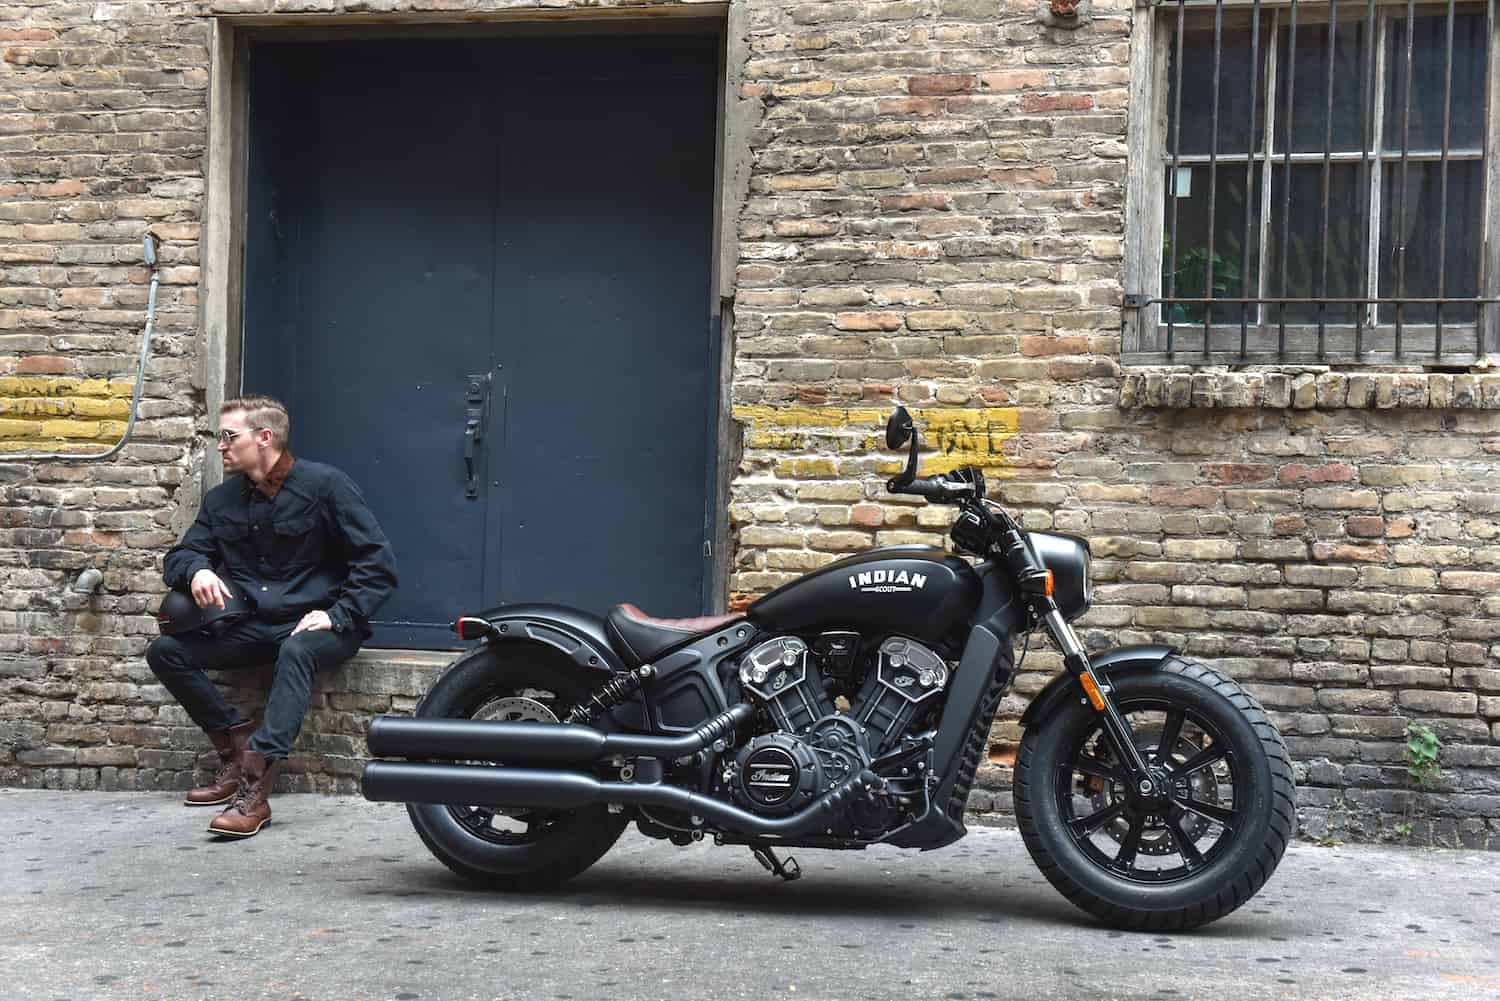 2018 Indian Scout Bobber sideview